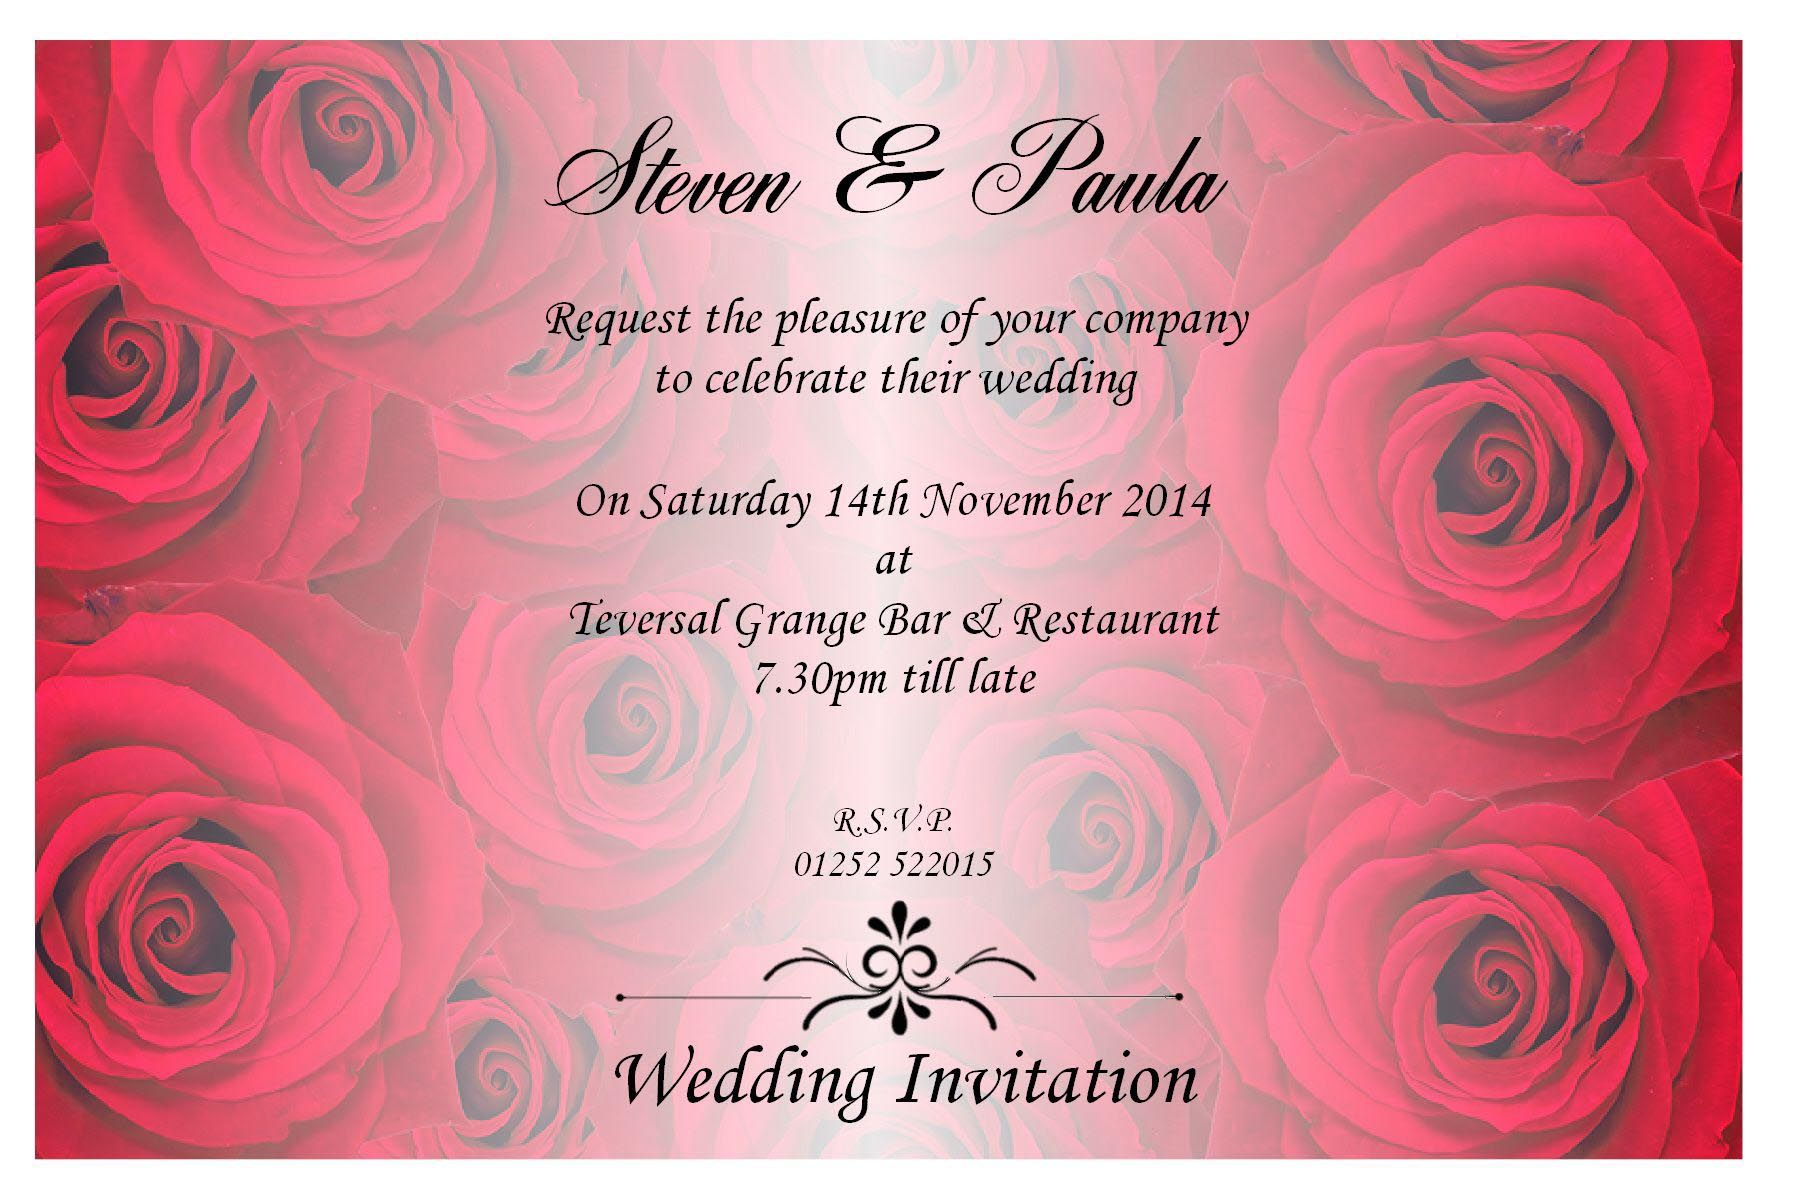 Wedding Invitation Templates  Wedding Invitation Design Quotes